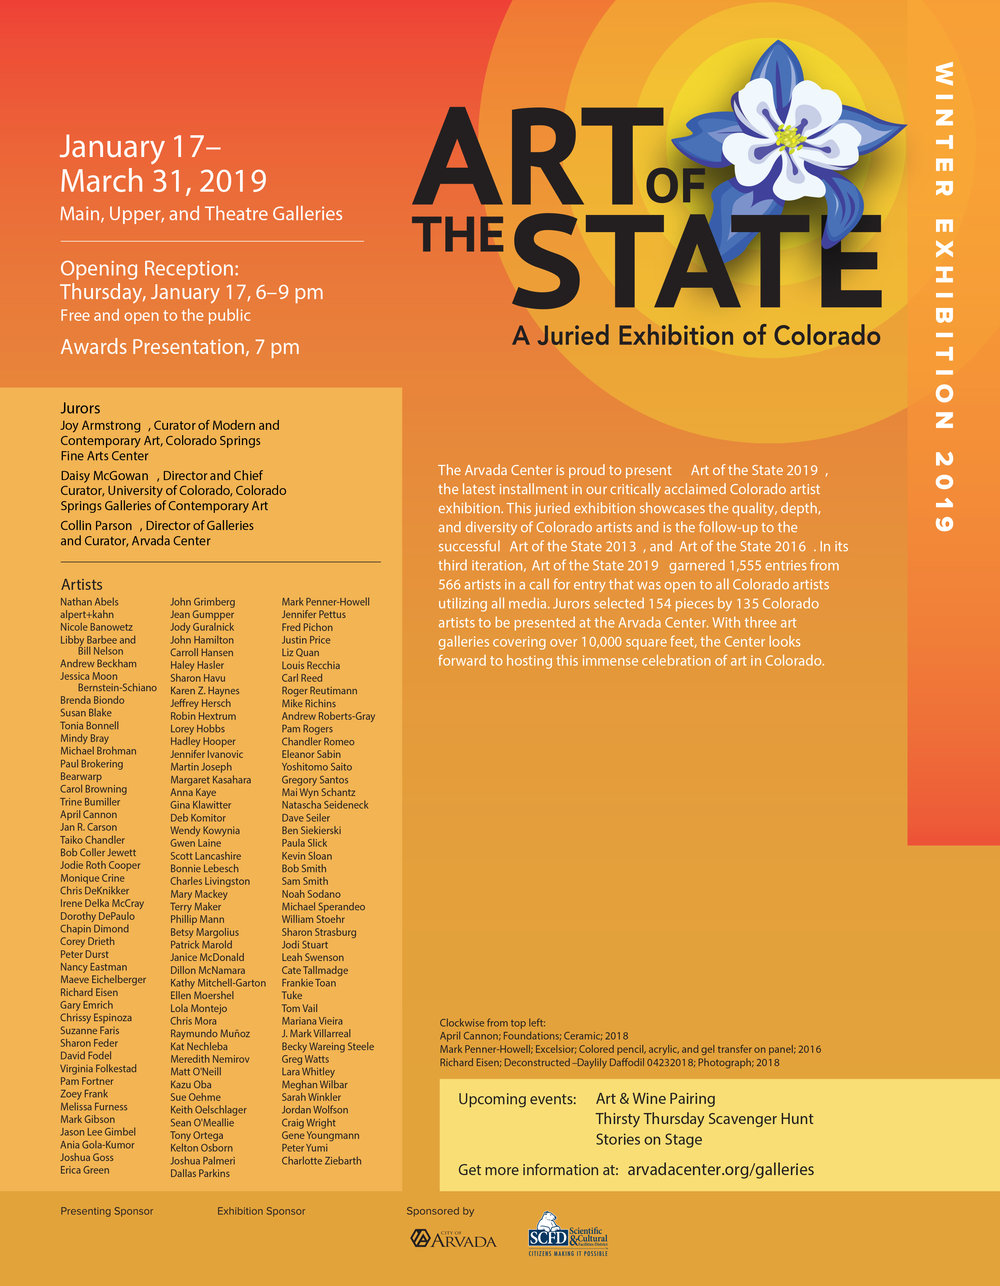 Art of the State @ Arvada Center for the Arts and Humanities - I'm honored to be a part of this upcoming exhibit featuring outstanding creative works from Colorado artists. This call for entry garnered 566 entries with 1,555 individual works. Jurors, Joy Armstrong, Curator of Modern and Contemporary Art @ Colorado Springs Fine Arts Center, Daisy McGowan , Director and Chief Curator @ University of Colorado Colorado Springs Galleries of Contemporary Art, and Collin Parson , Gallery Director and Curator, Arvada Center worked diligently to select 154 works by 135 artists. Please join us for Art of the State's Opening Reception on Thursday, January 17, 6-9 p.m.